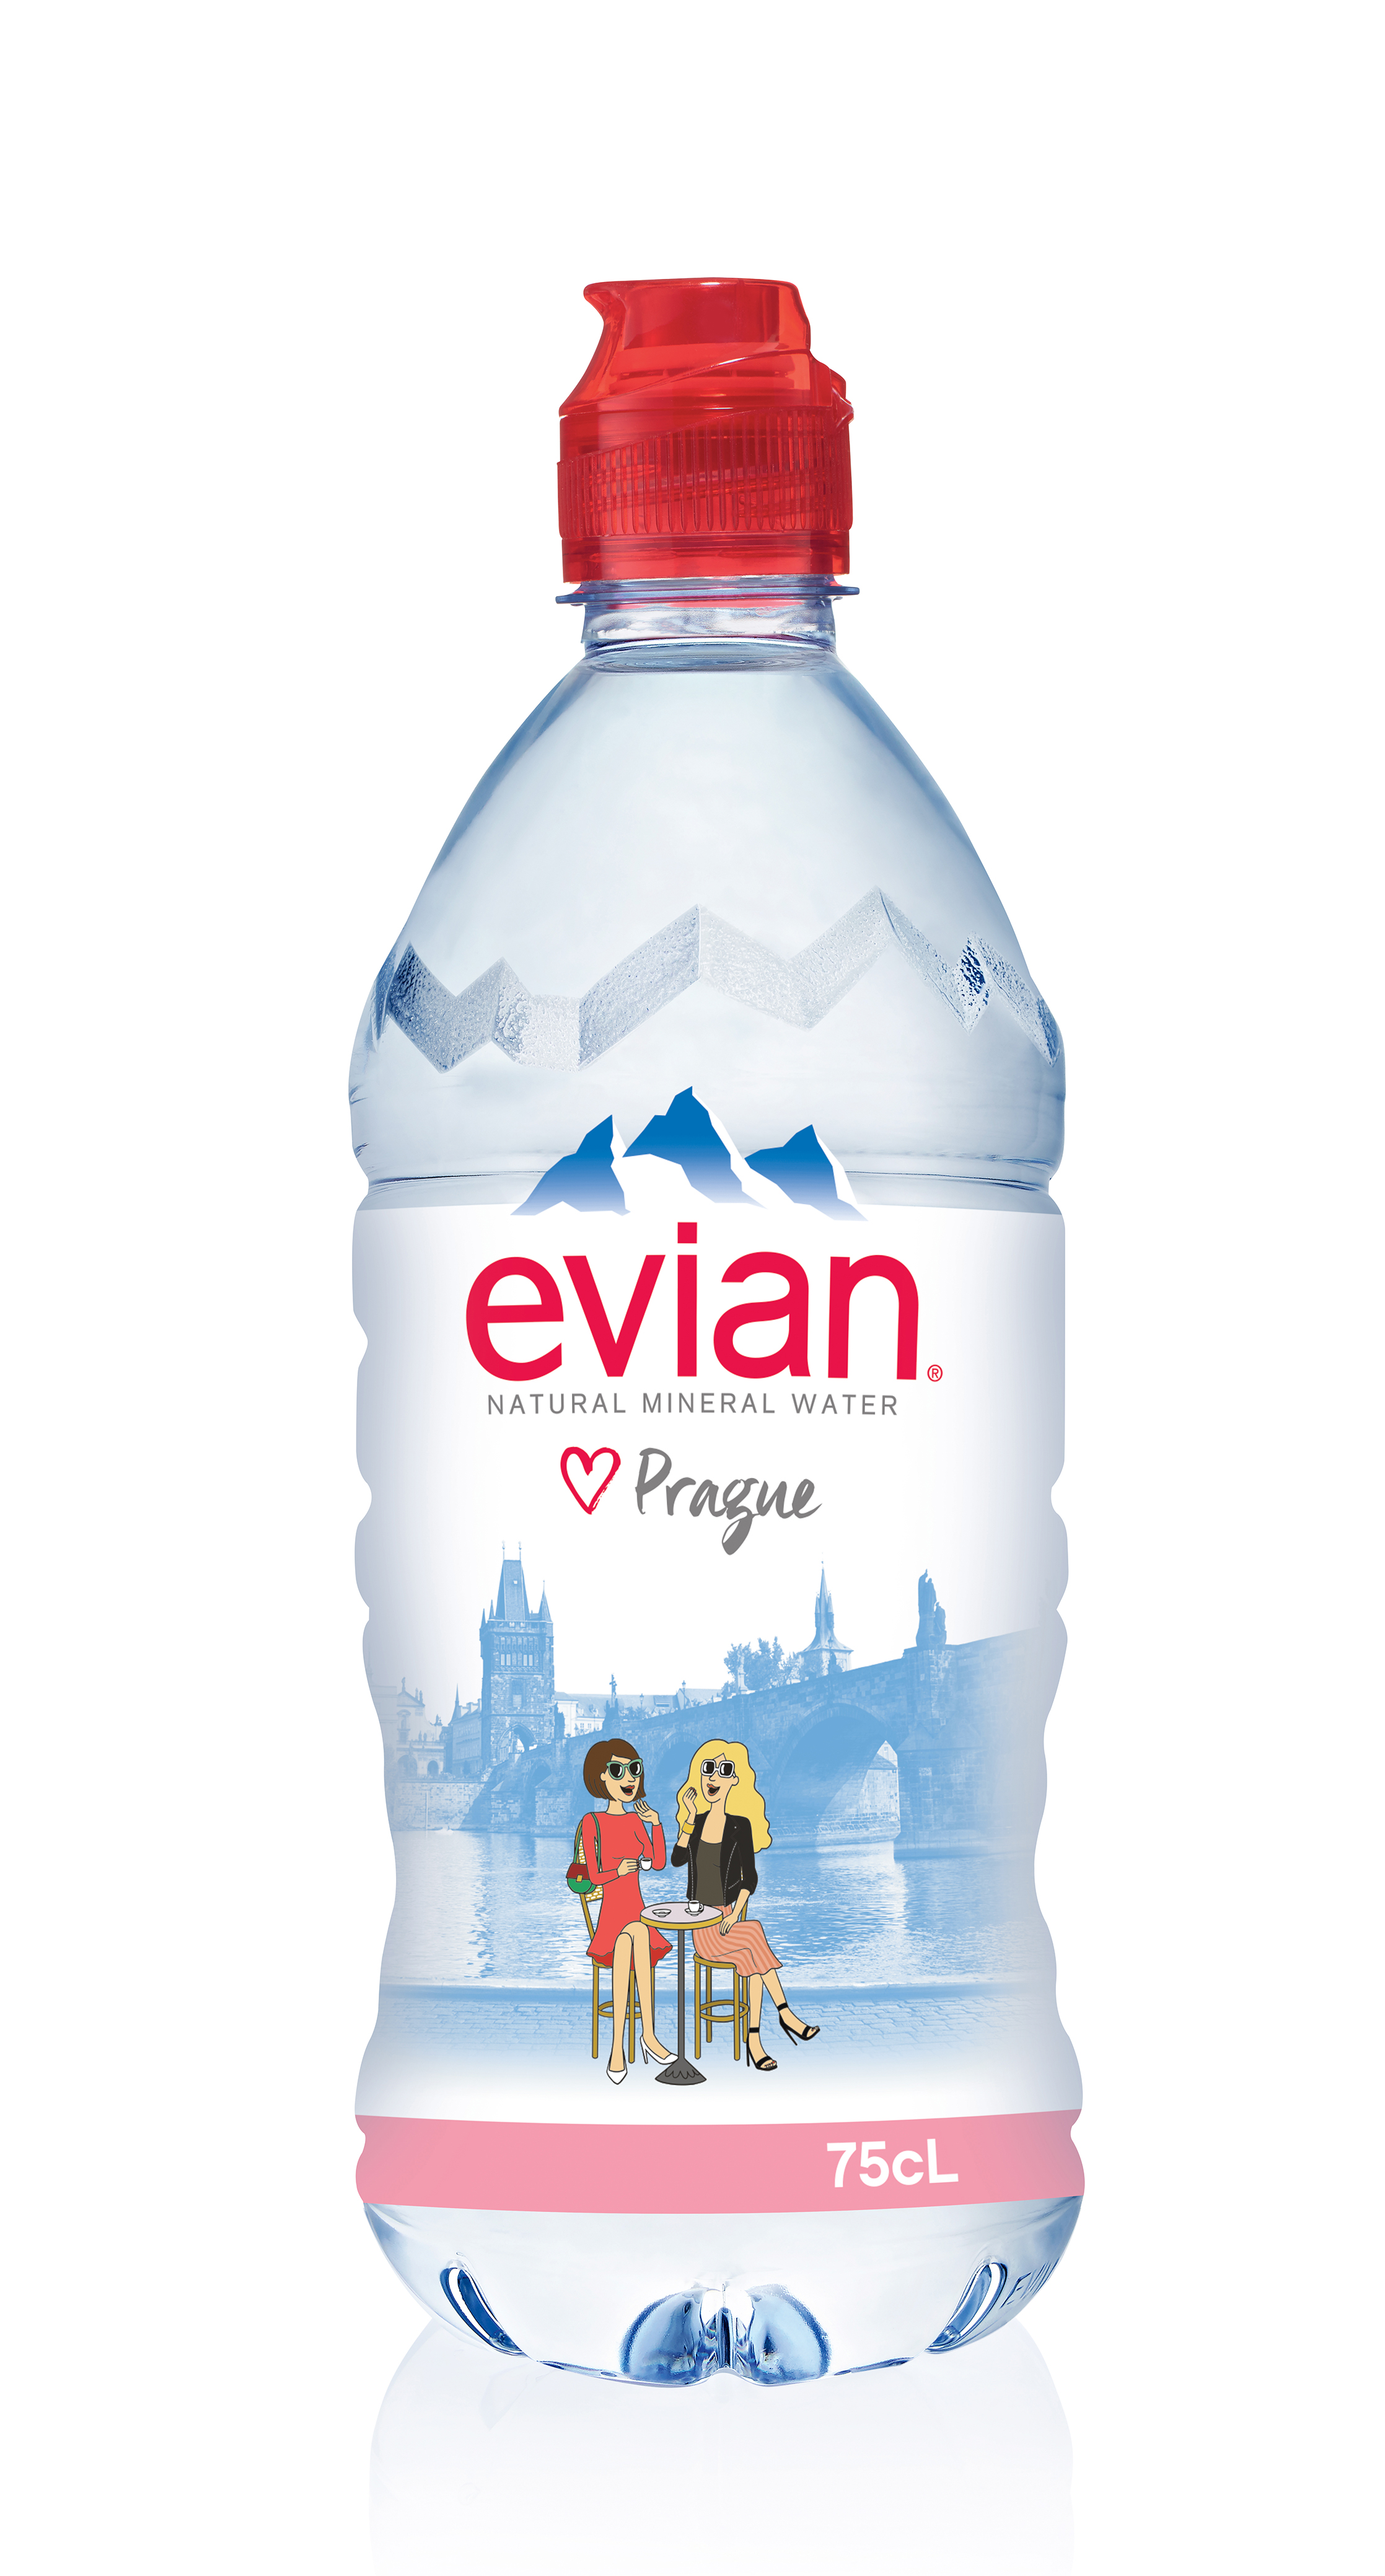 Evian_Cities_Bouteille_MAC_Europe75CL-HD_Prague_02.jpg